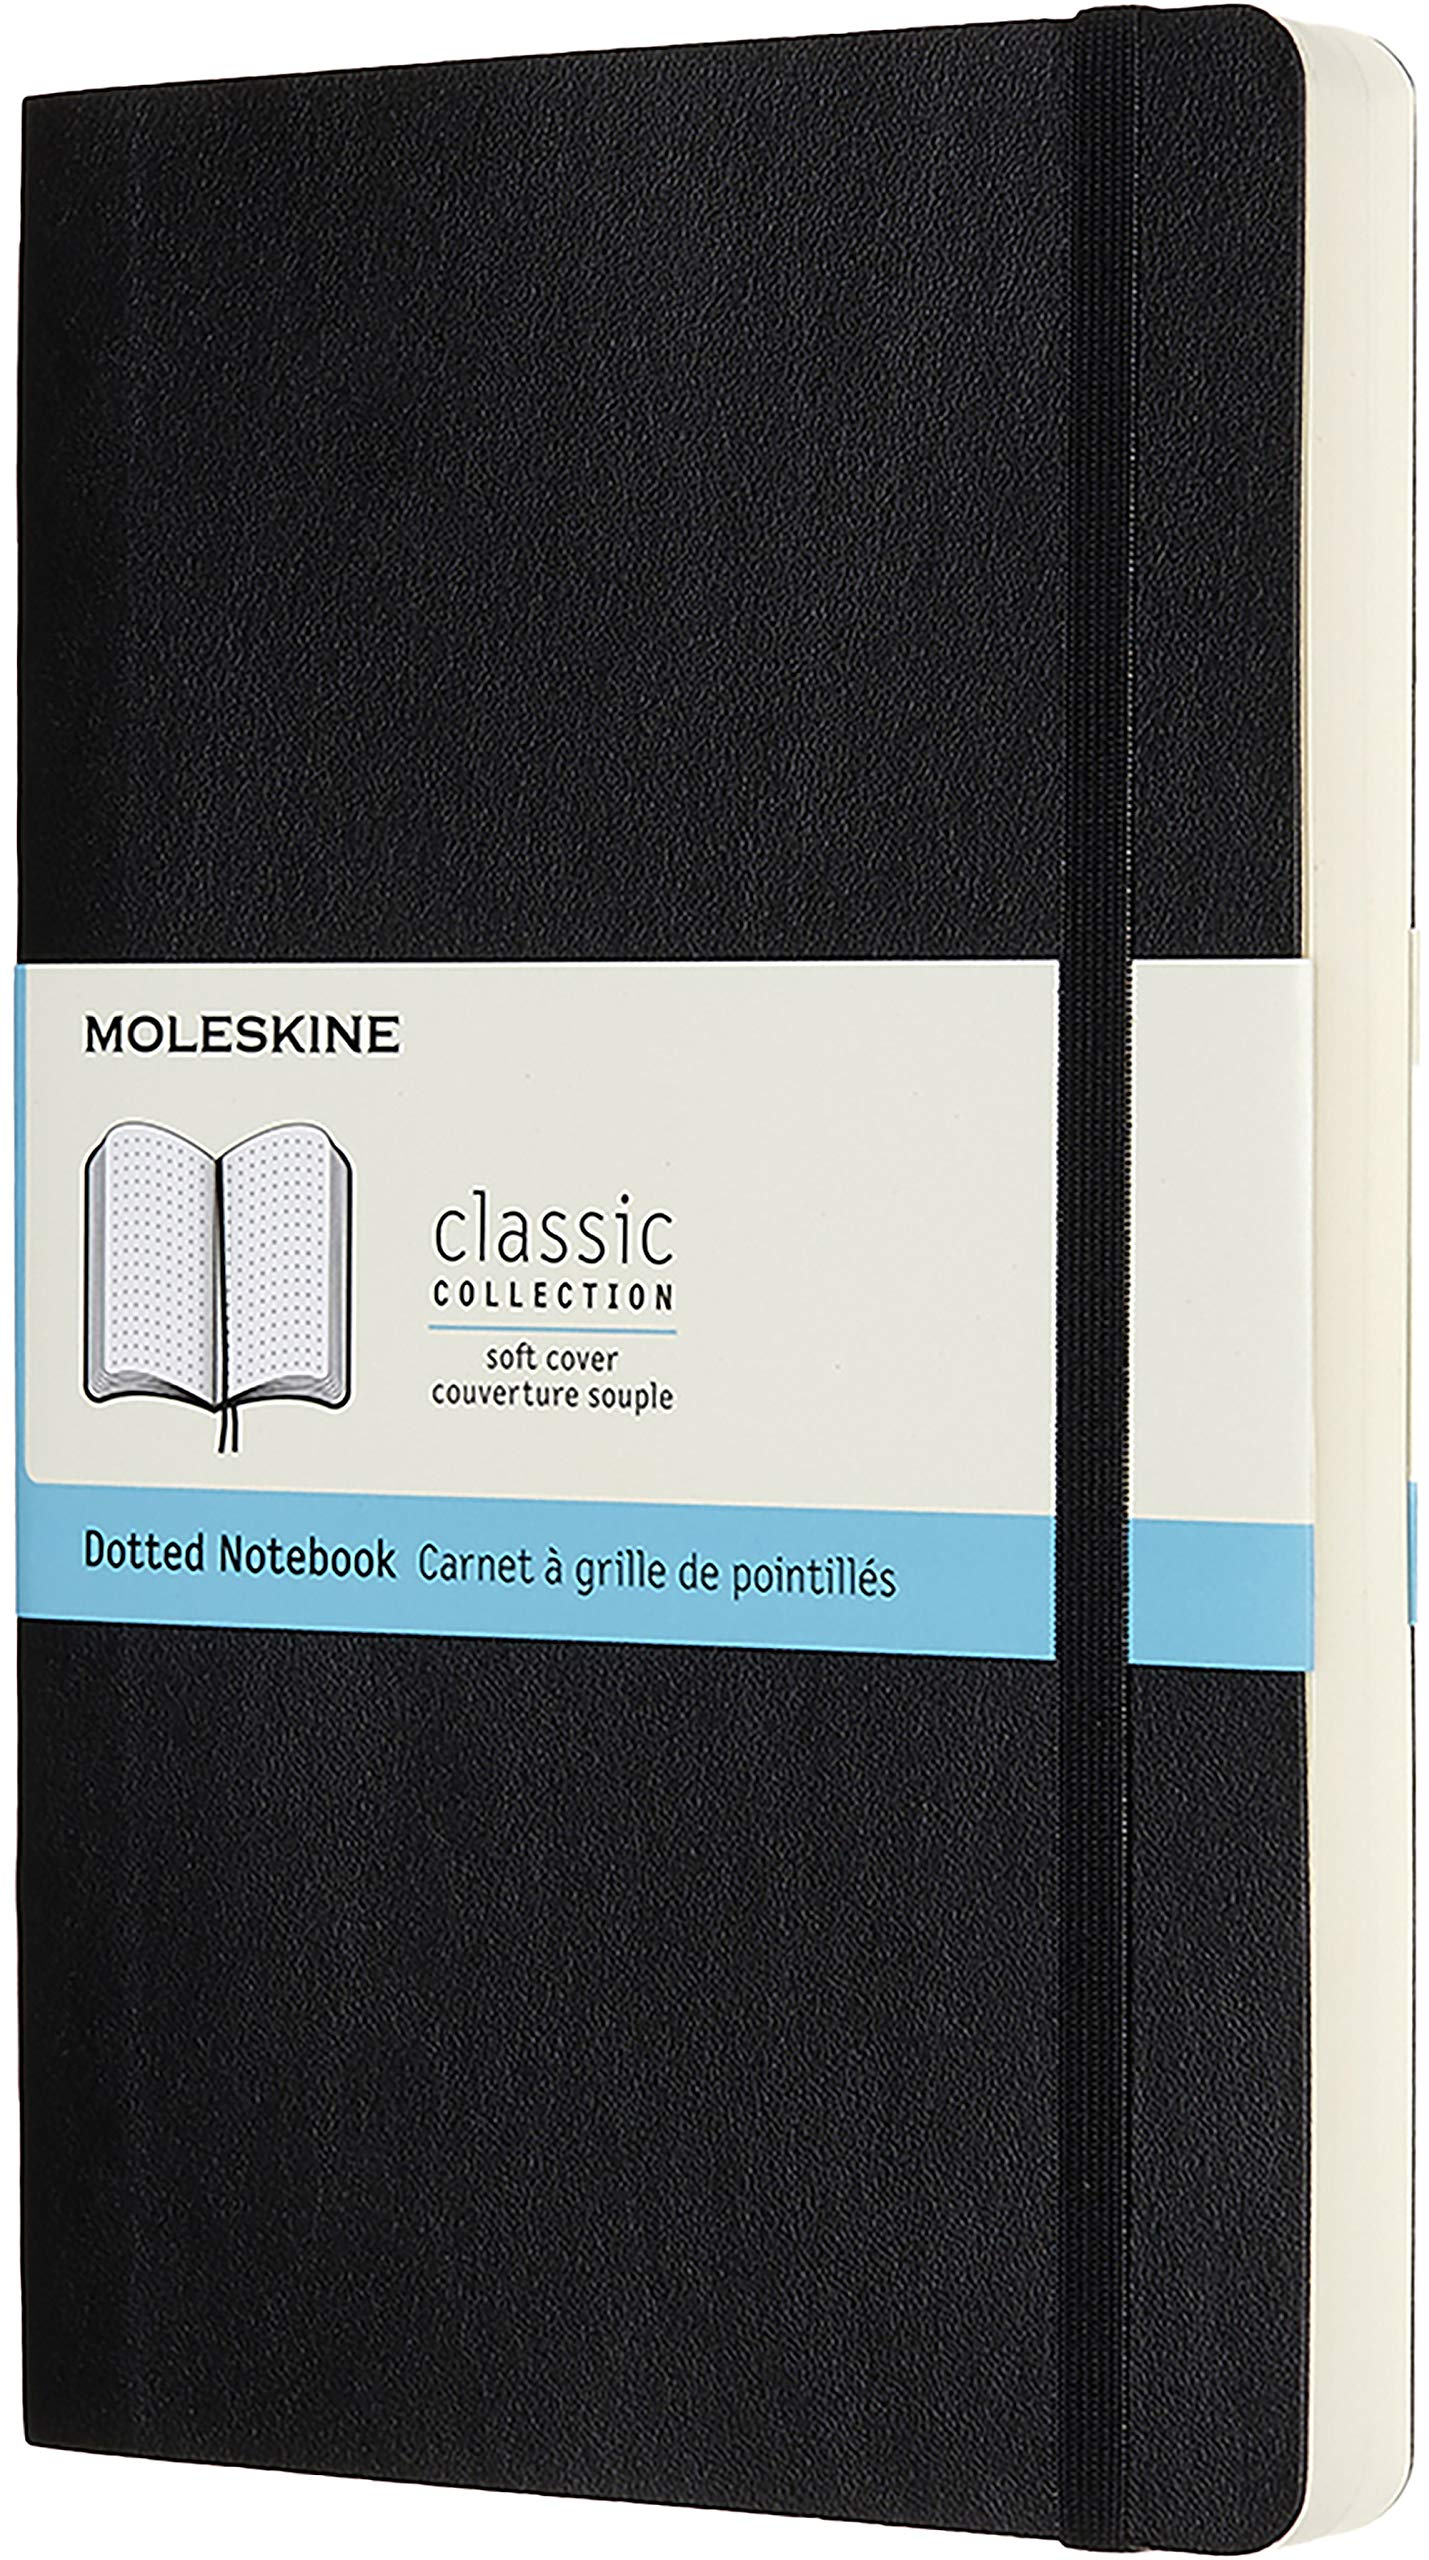 Moleskine Classic Expanded Notebook, Soft Cover, Large (5'' x 8.25'') Dotted, Black